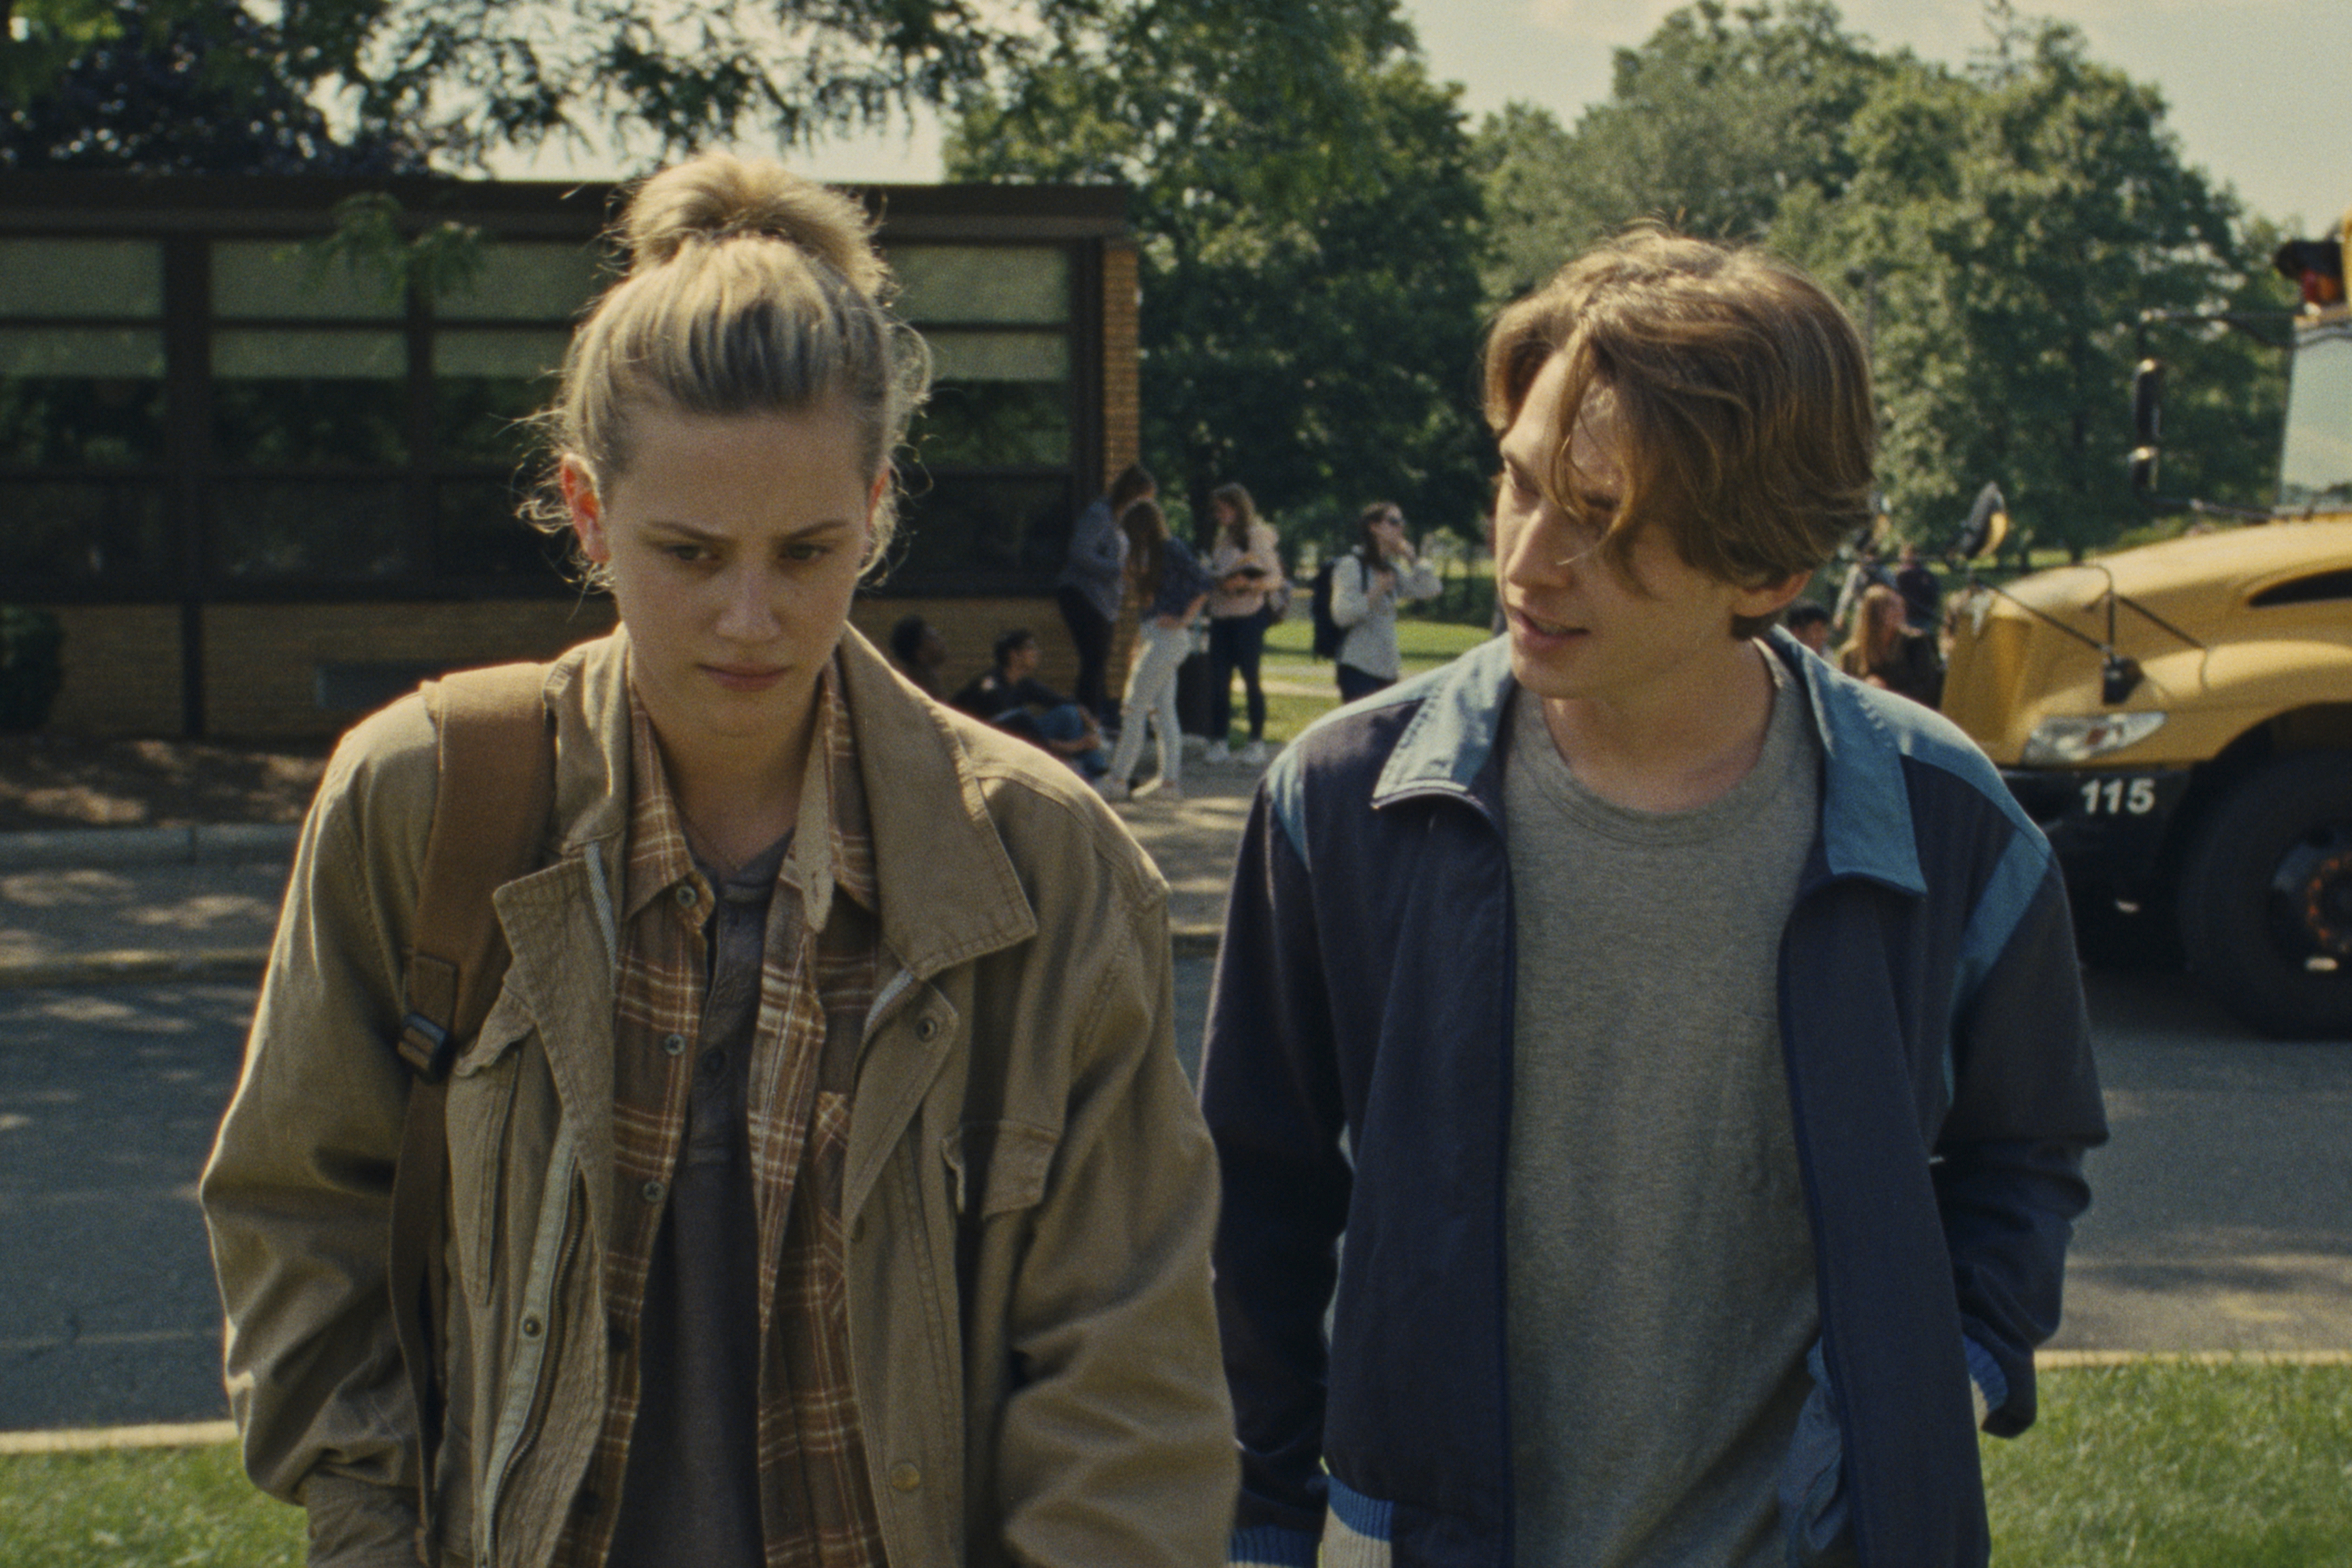 Lili Reinhart as Grace Town and Austin Abrams as Henry Page in 'Chemical Hearts.'